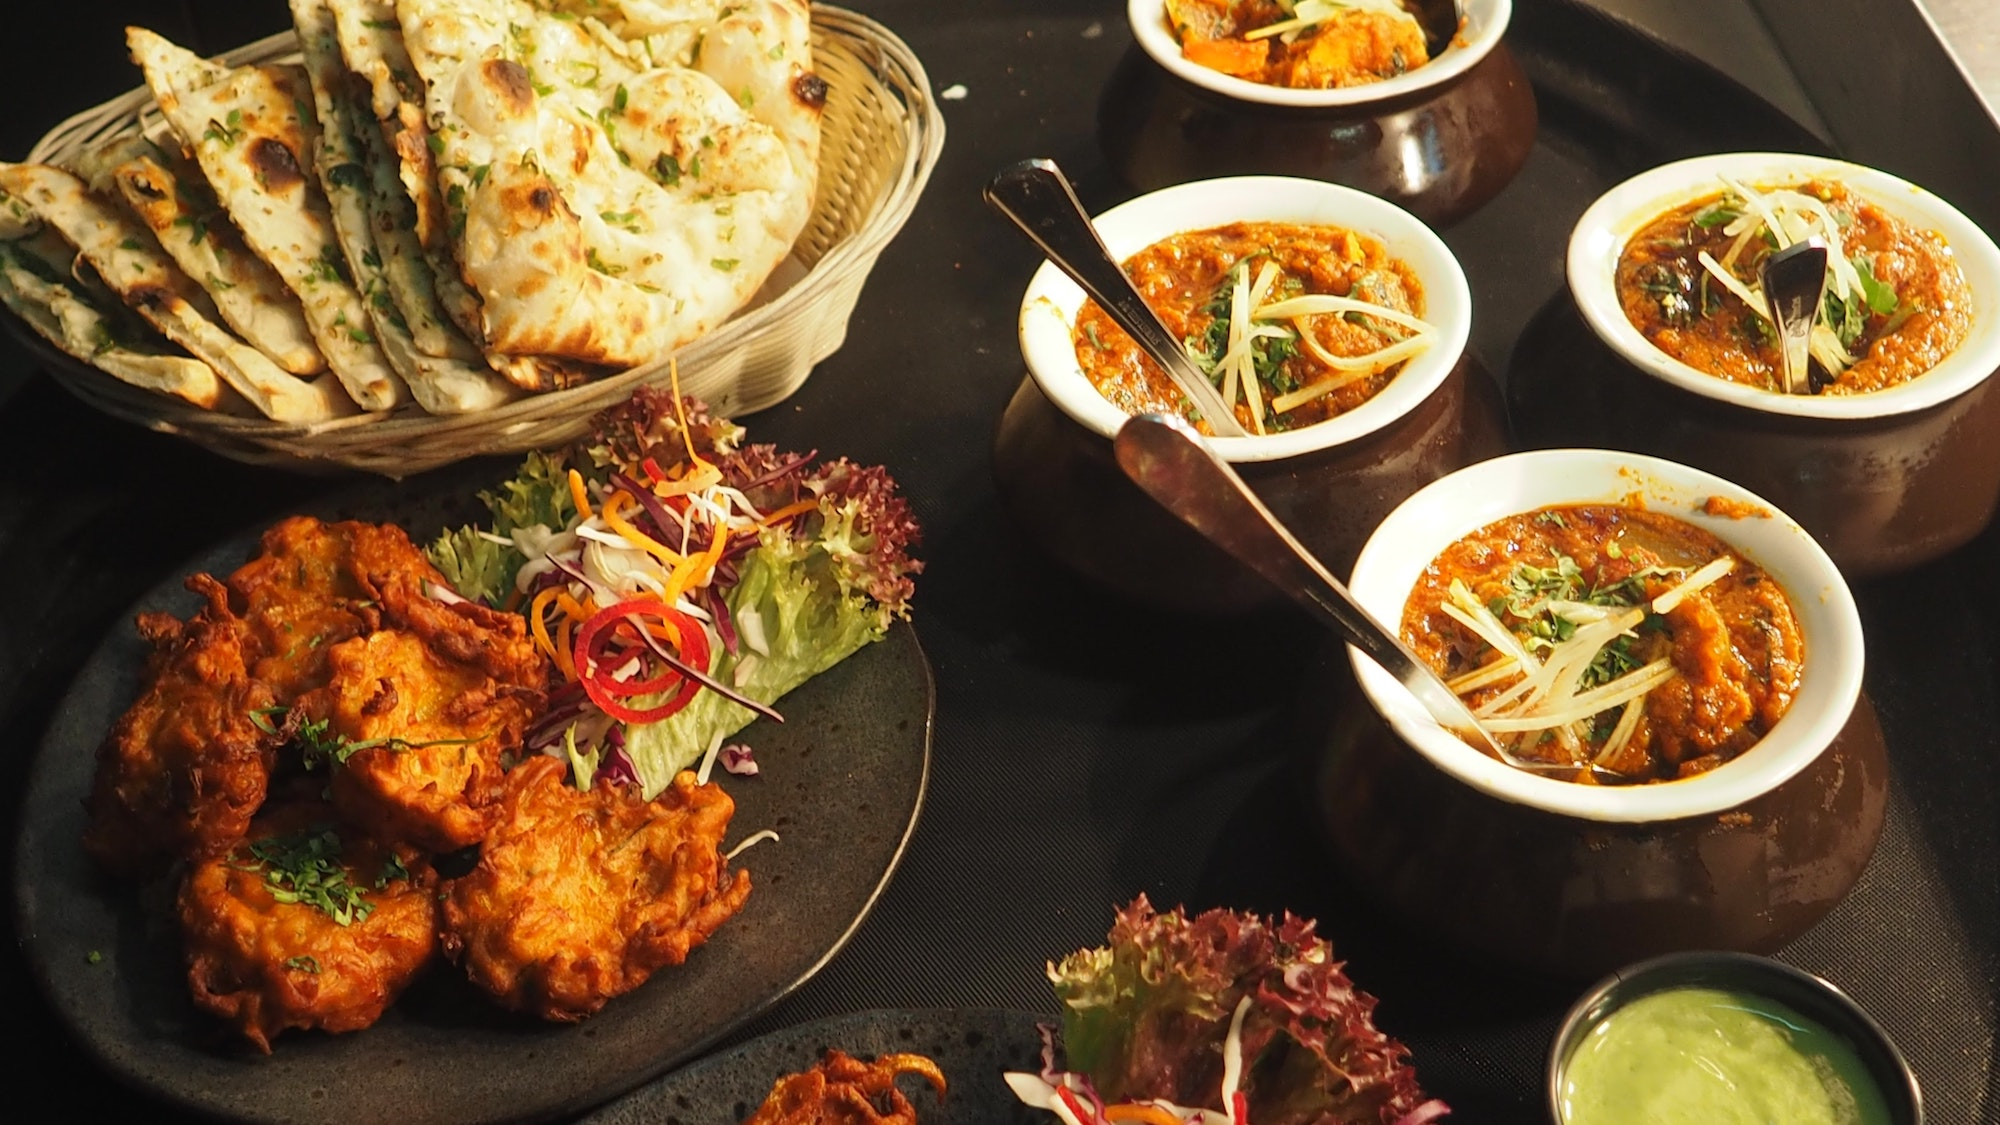 Travel Through Your Stomach with These International Dishes